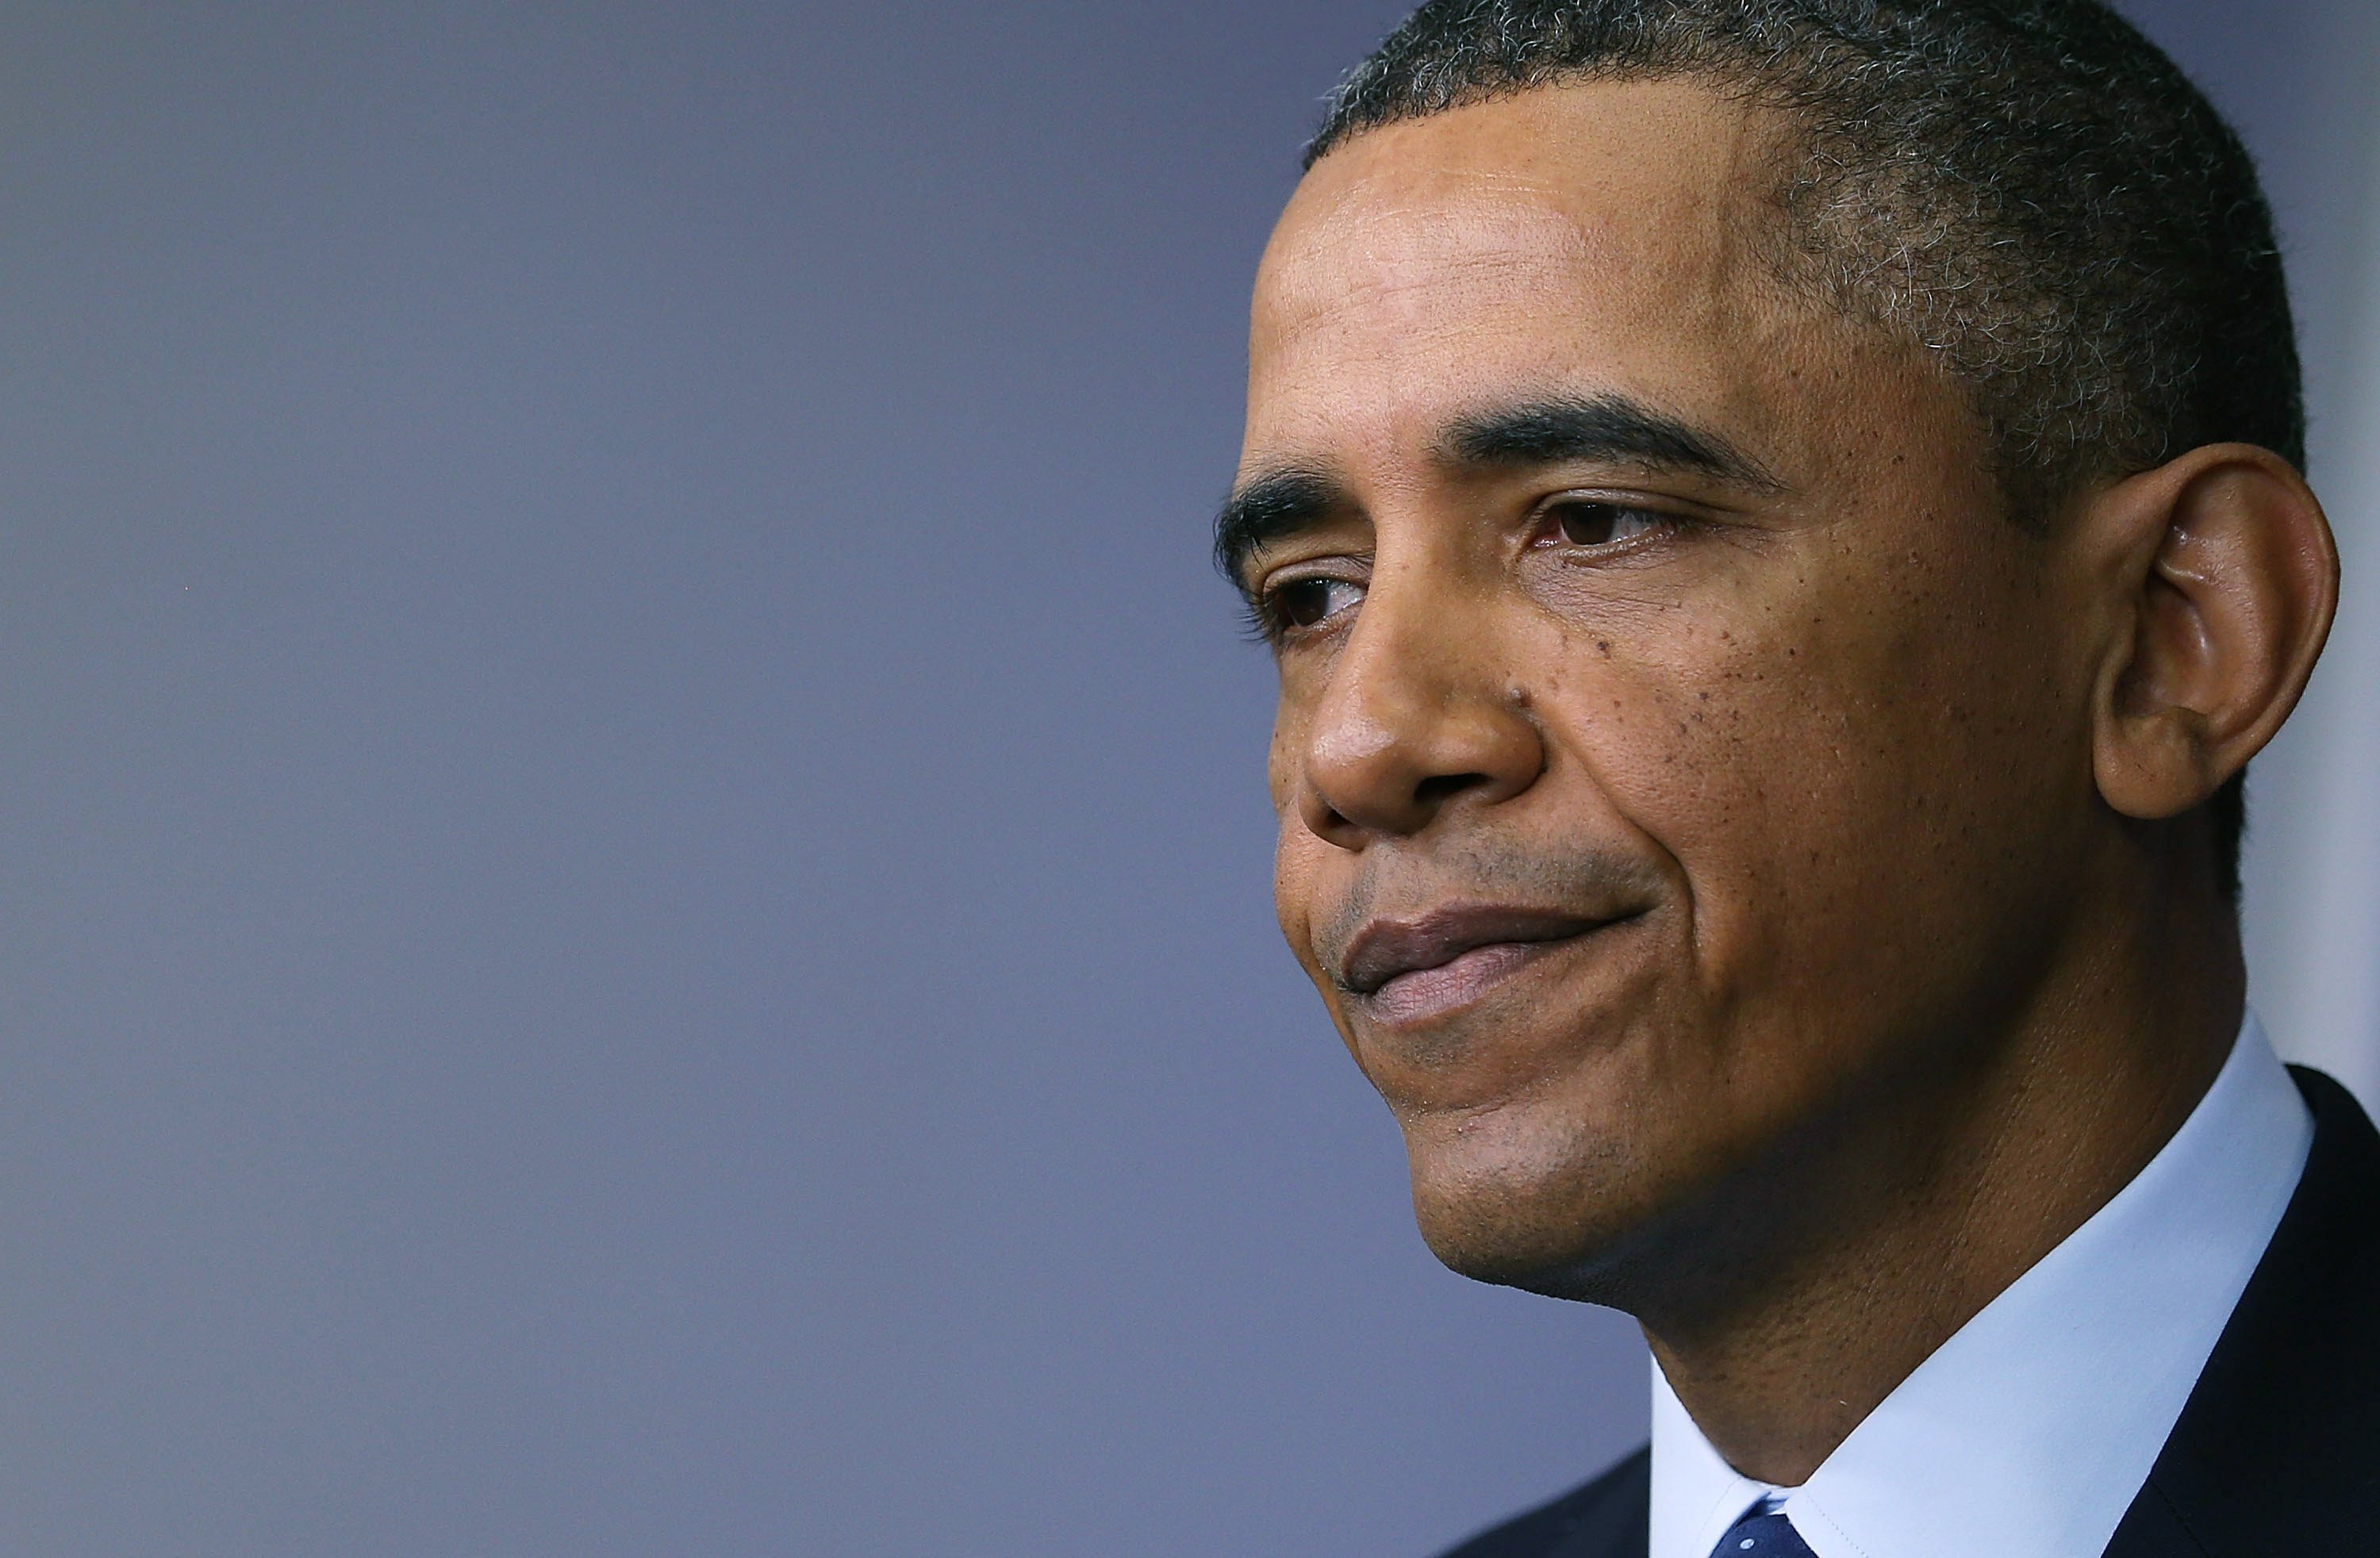 Obama to make first visit of his presidency to a U.S. mosque next week